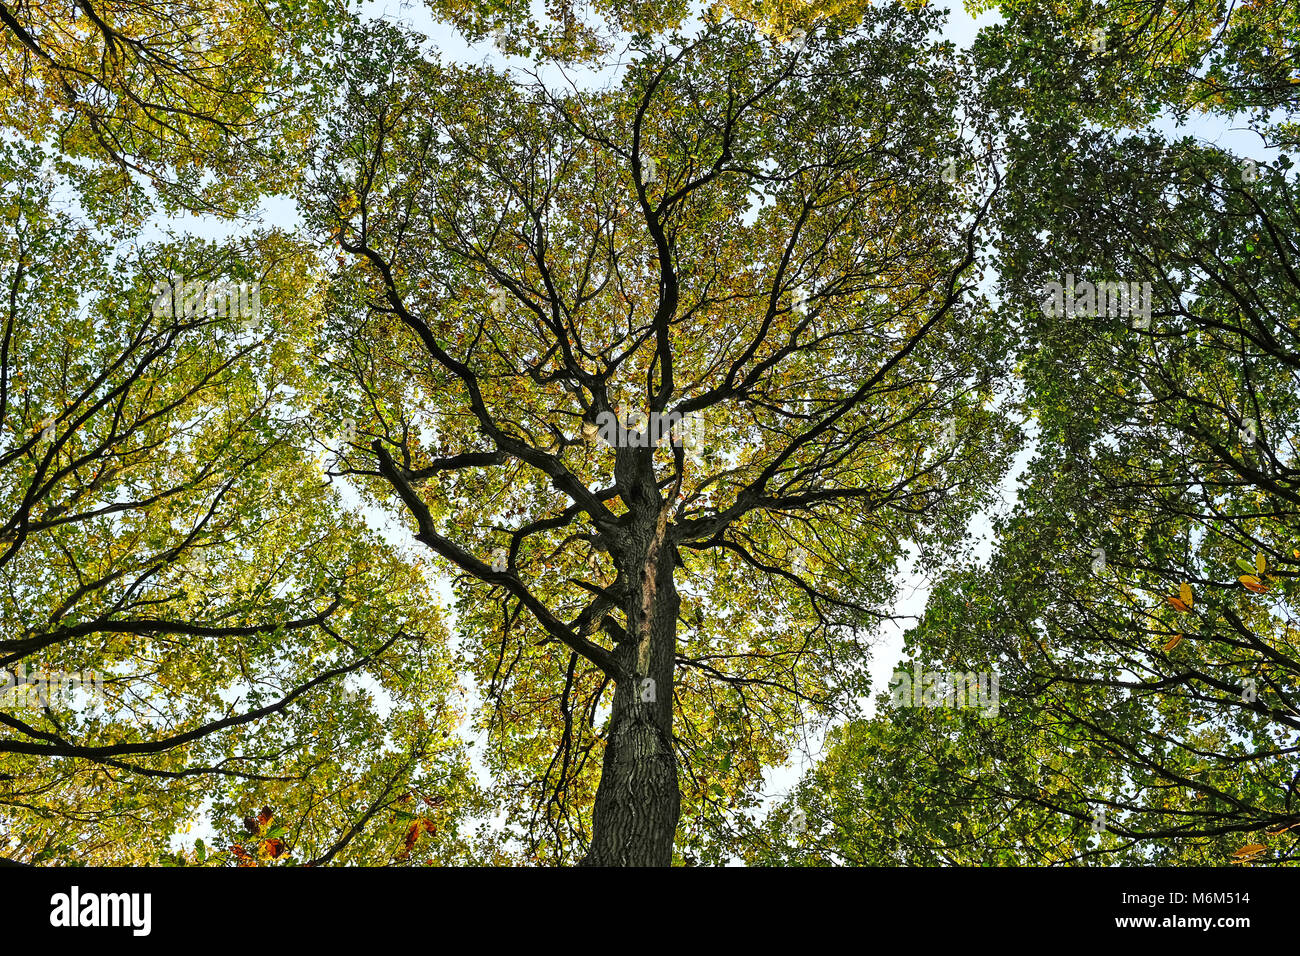 Tree canopy viewed from below - Stock Image